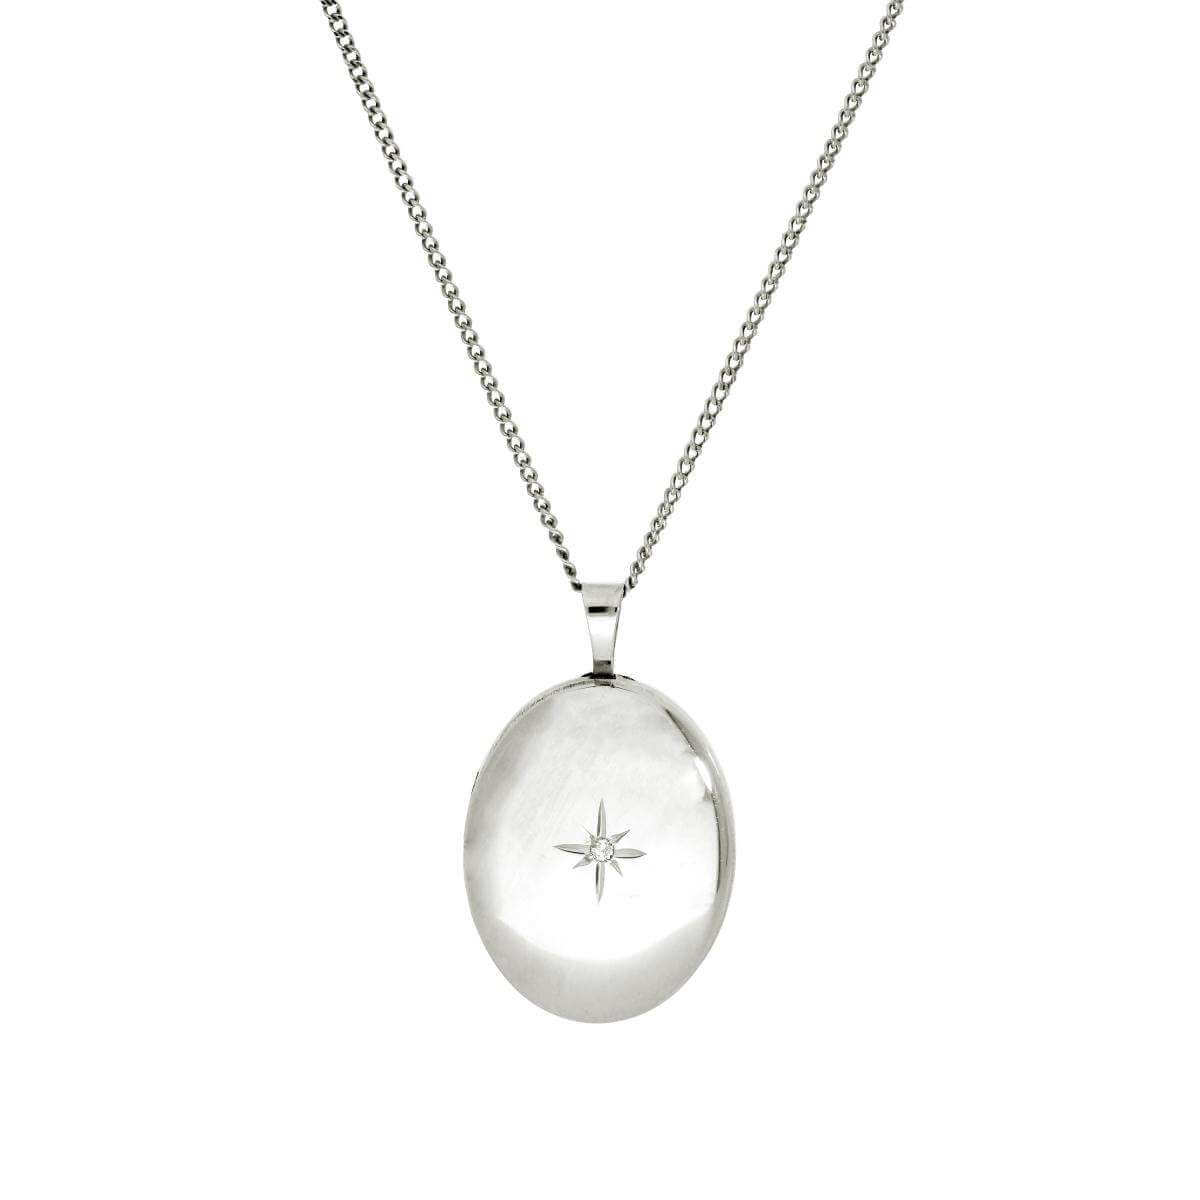 9ct White Gold & Diamond Oval Locket with Shining Star Design 16 - 18 Inches